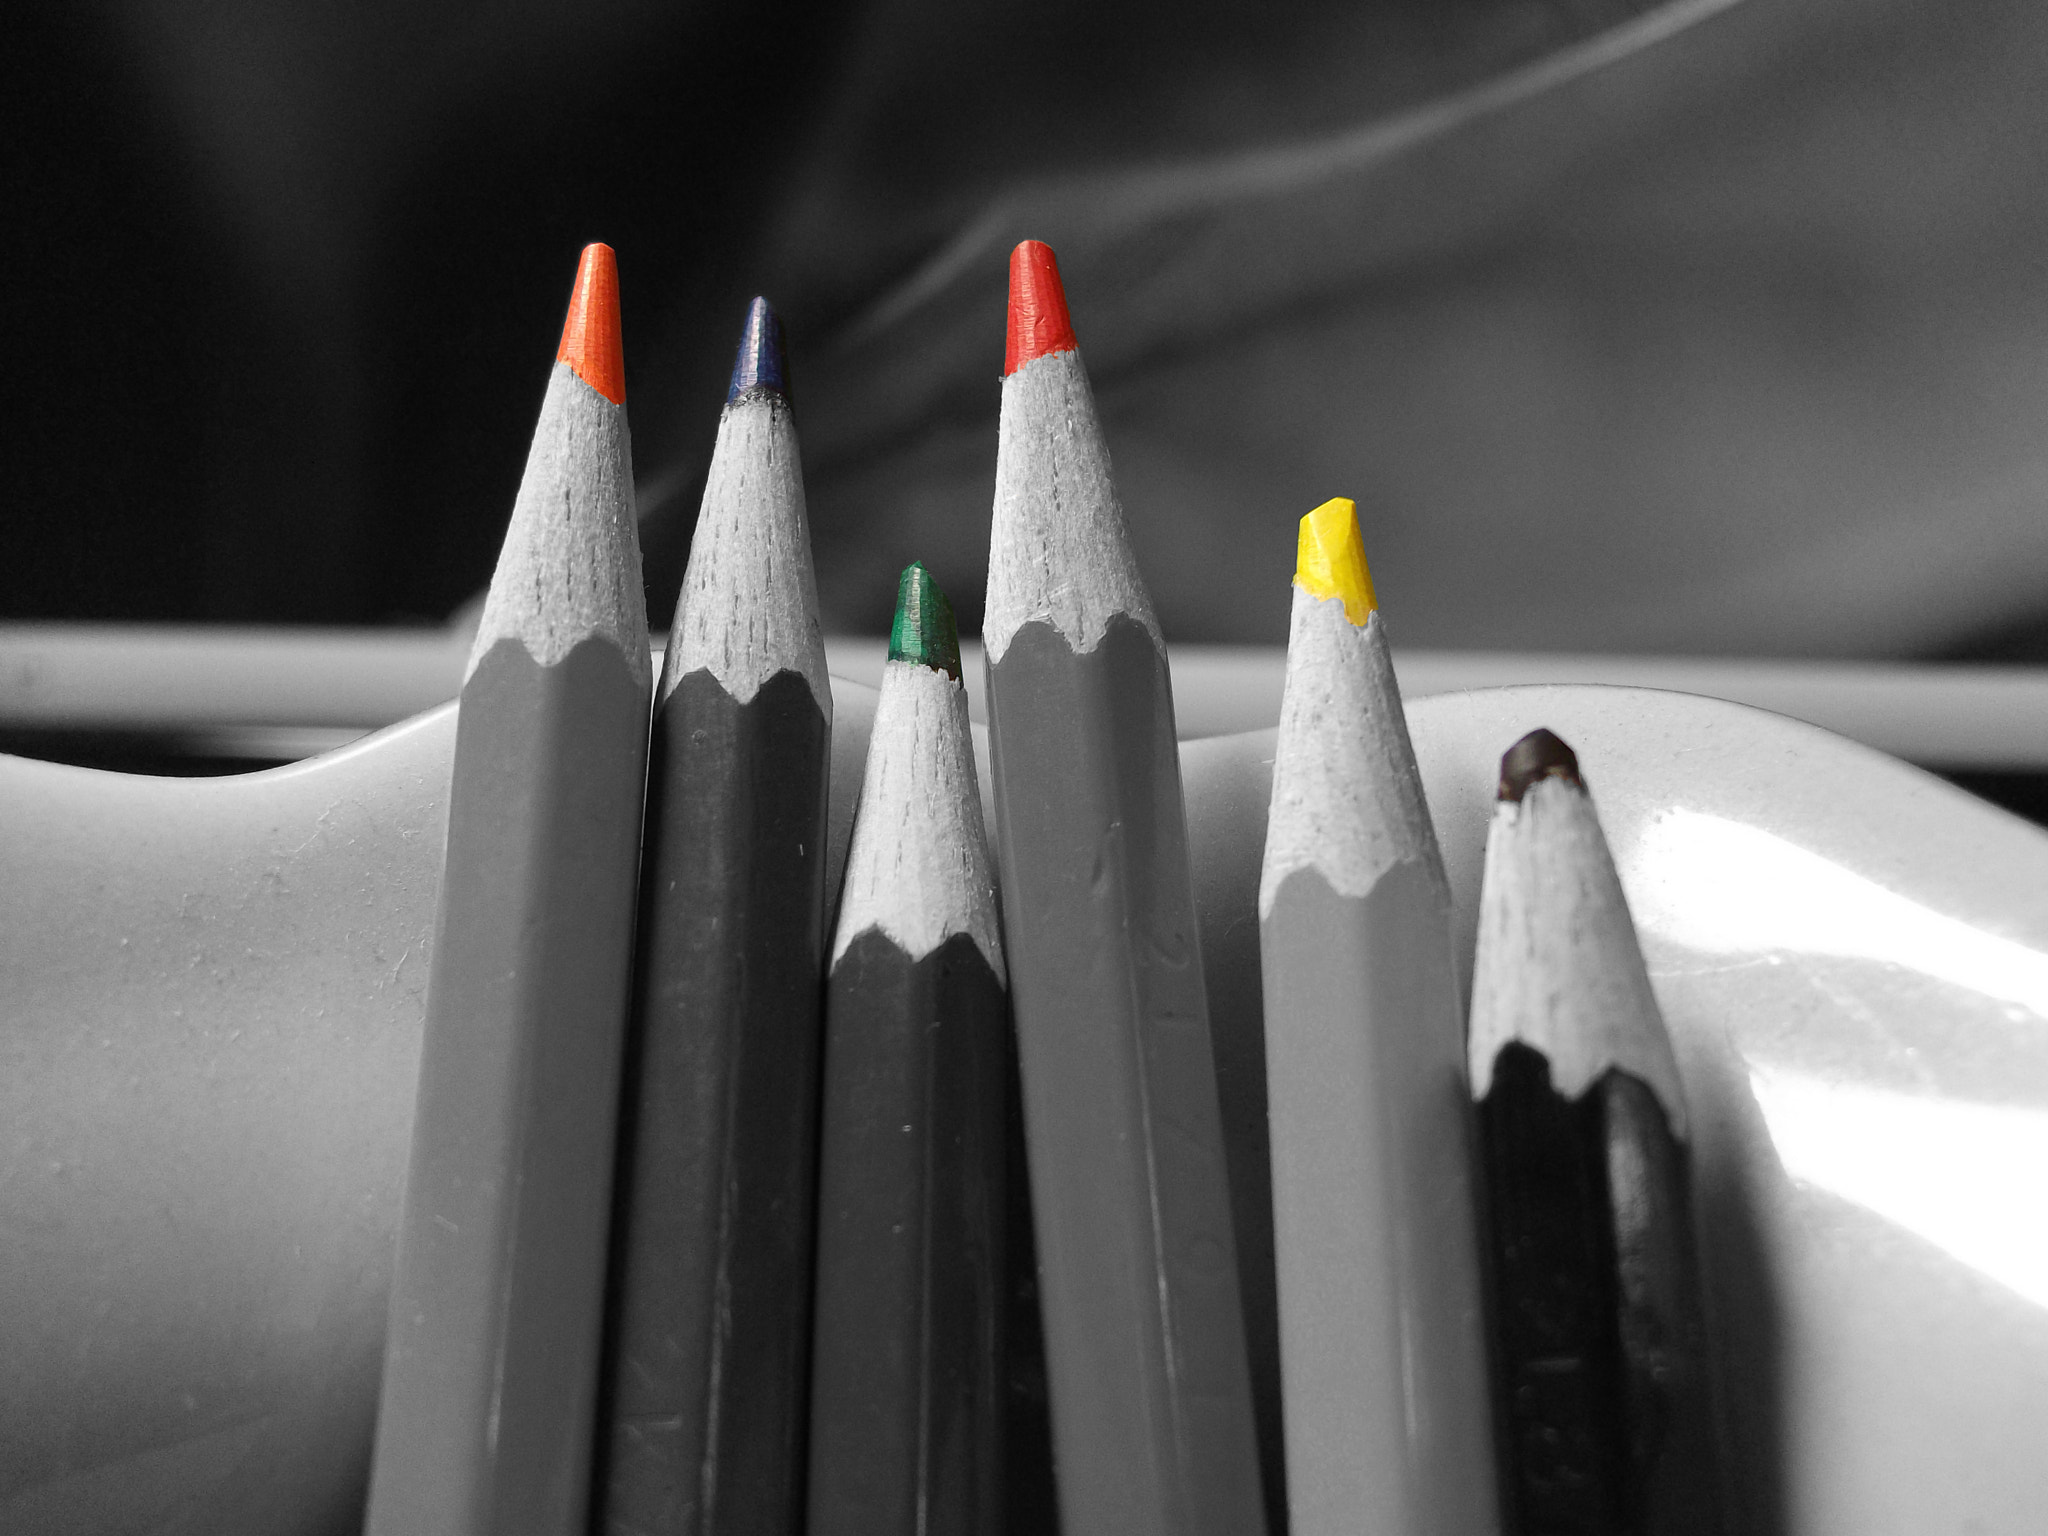 Photograph Color Pencils by Christian Han on 500px